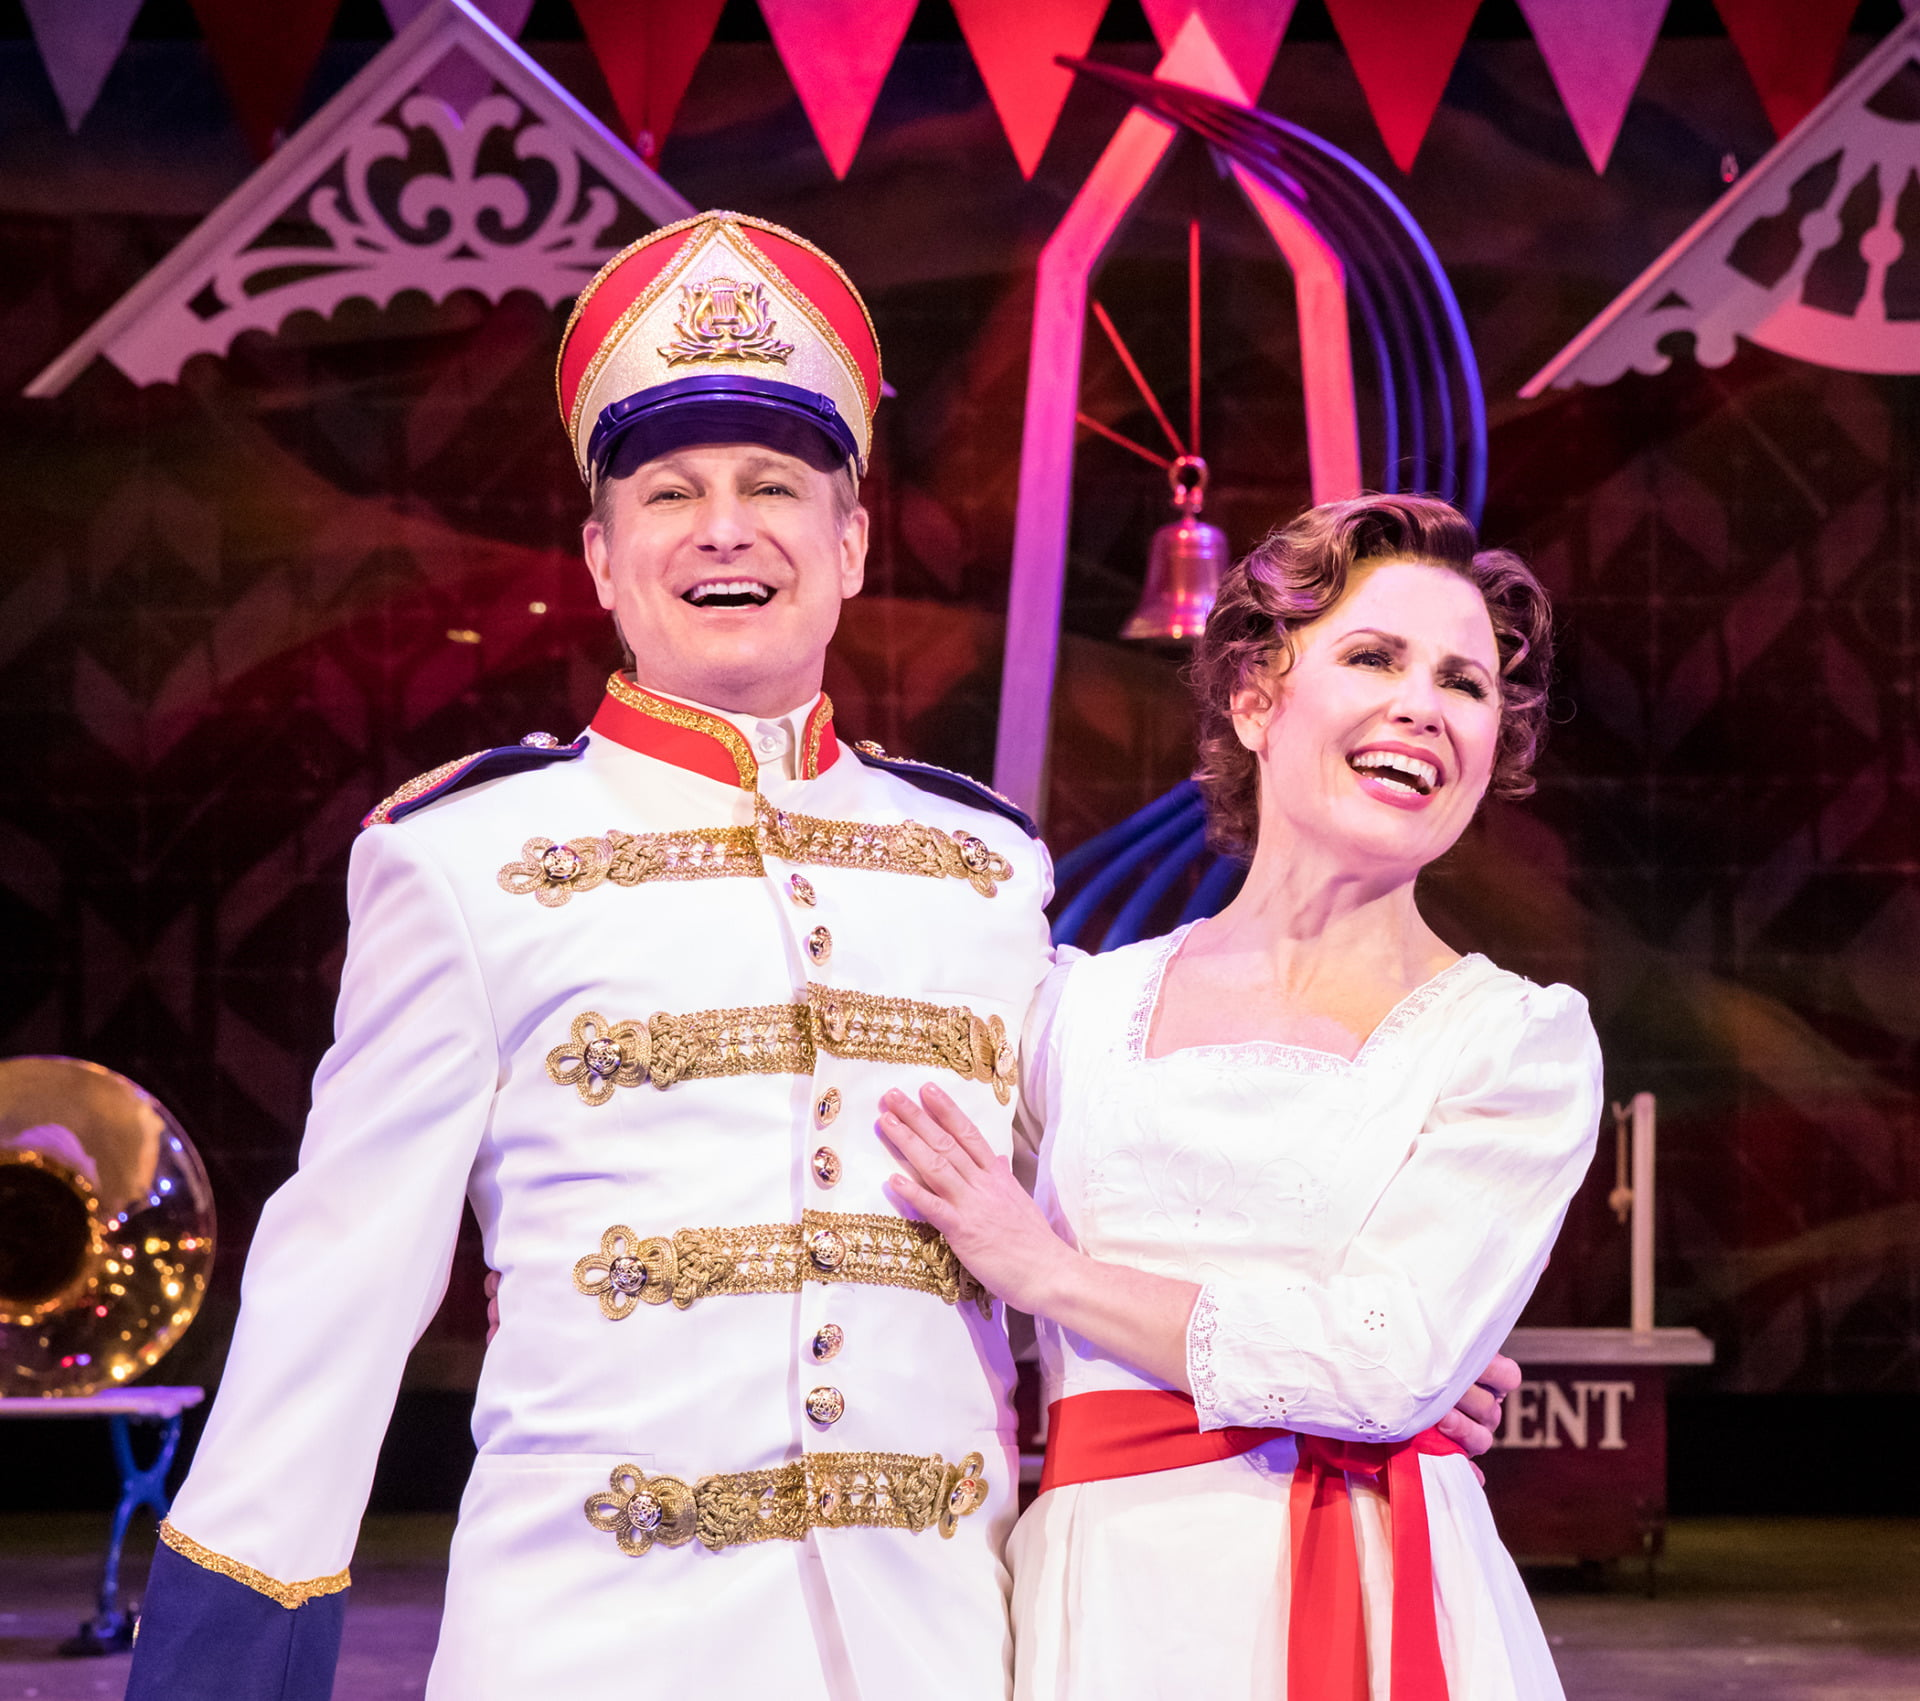 Review of The Music Man at the Chanhassen Dinner Theatres